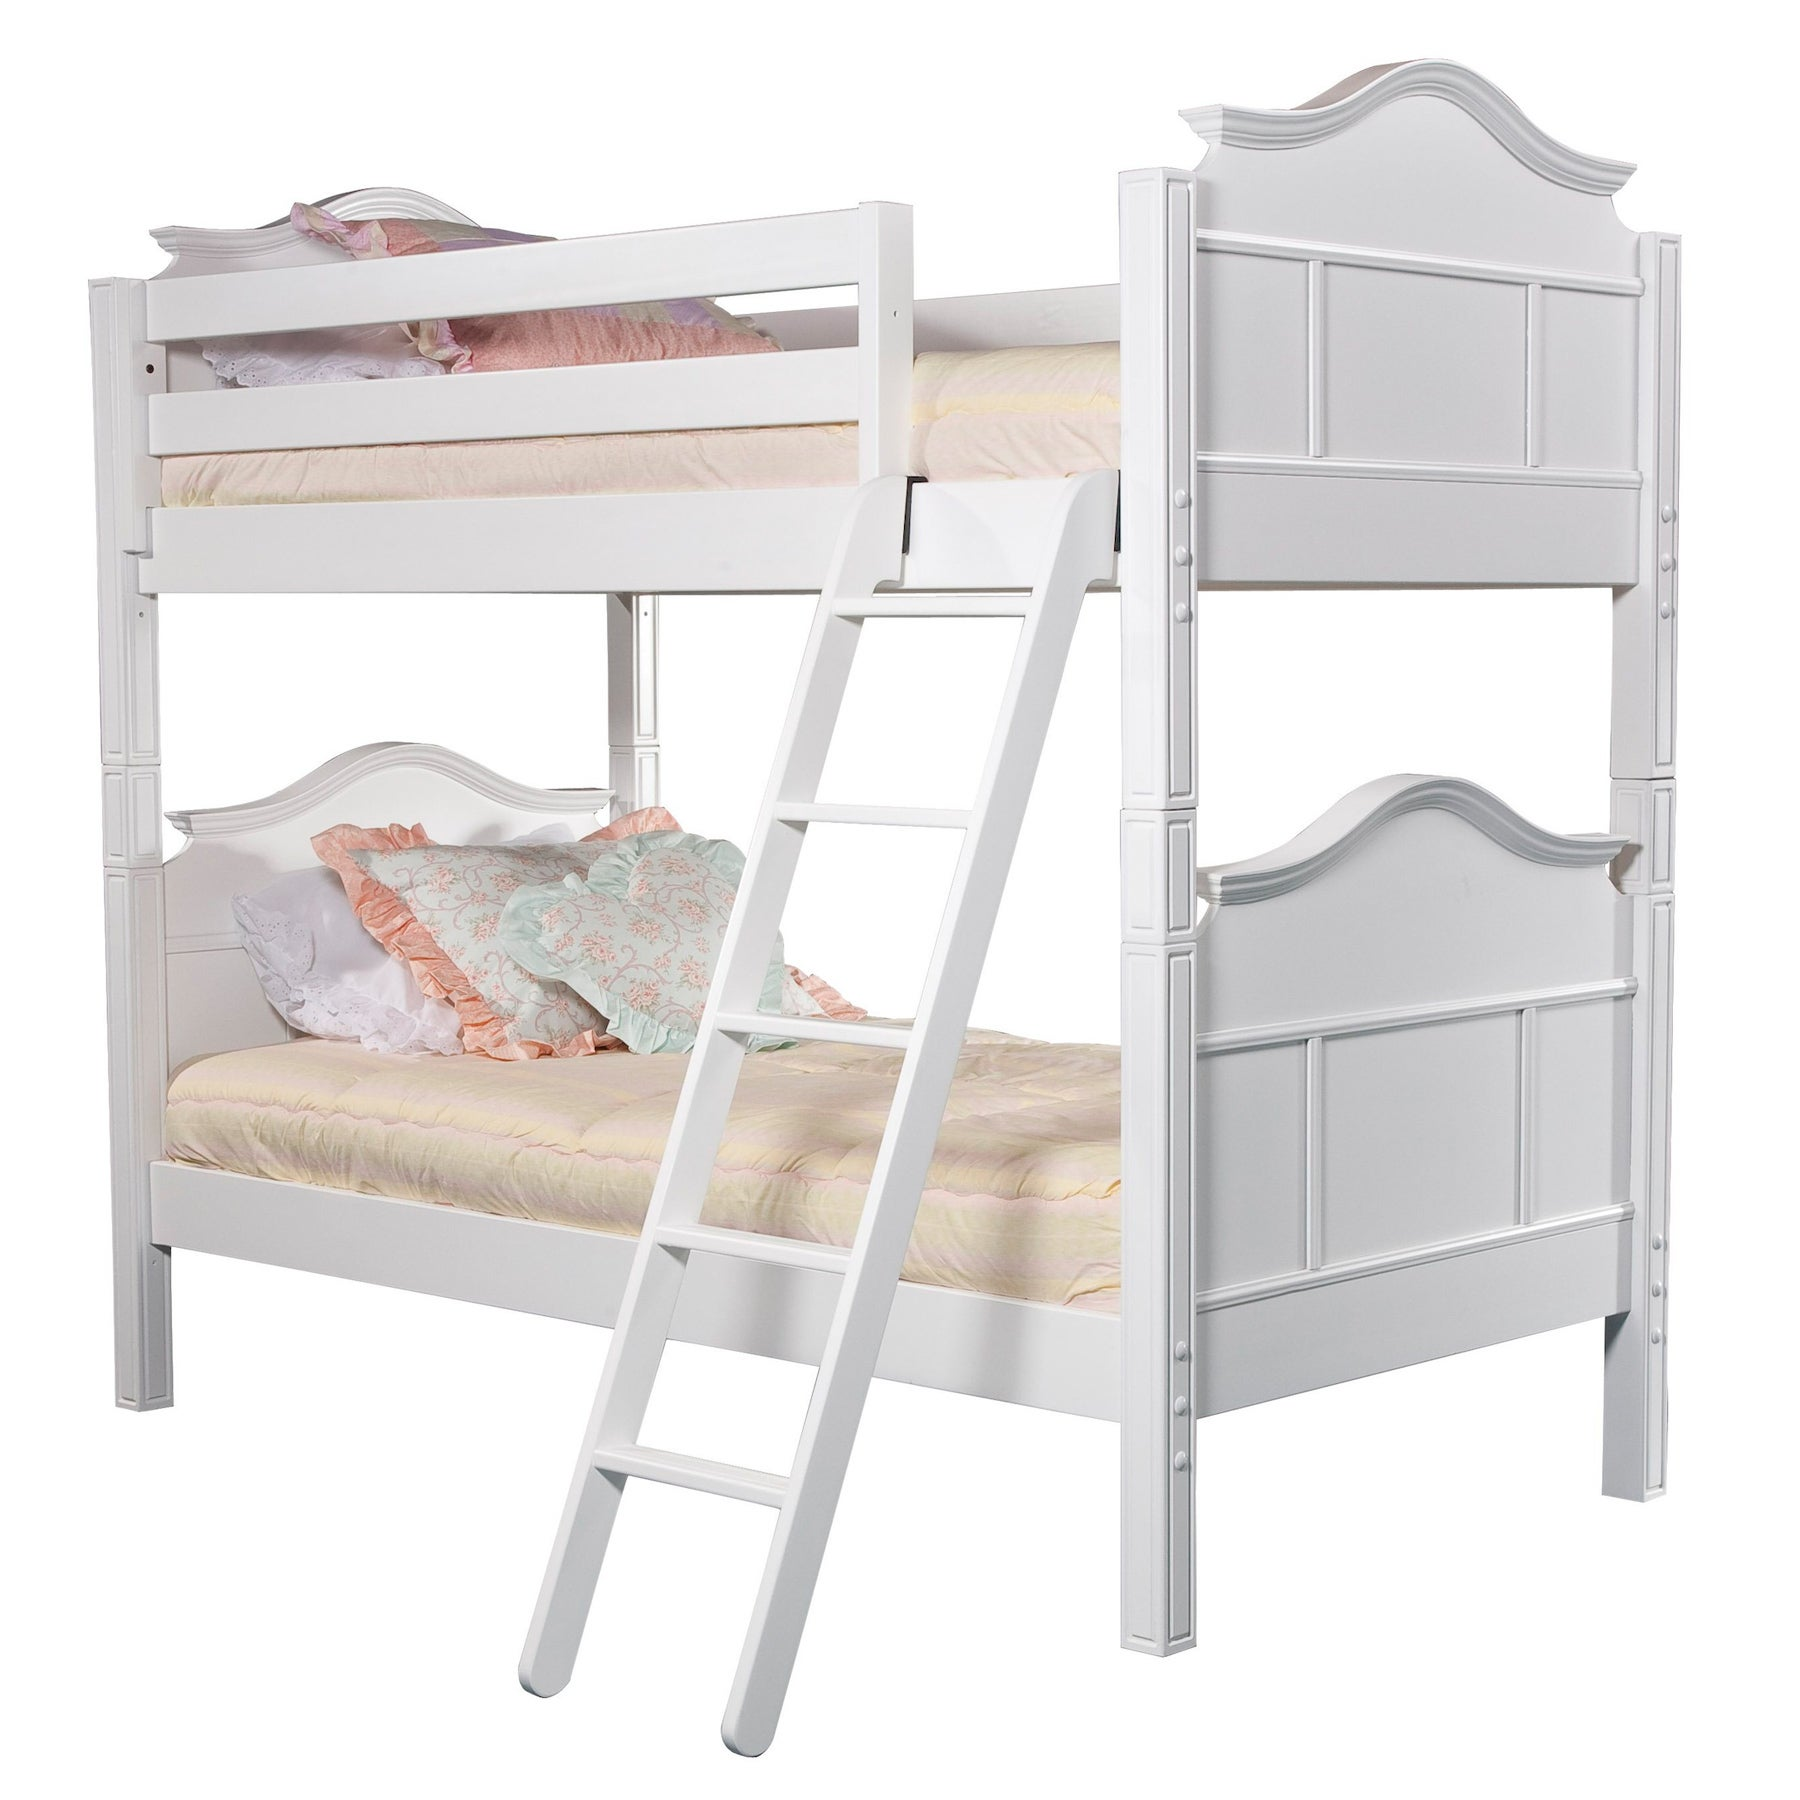 Bolton Emma French-design Twin Bunk Bed (Emma Bunk Bed), ...